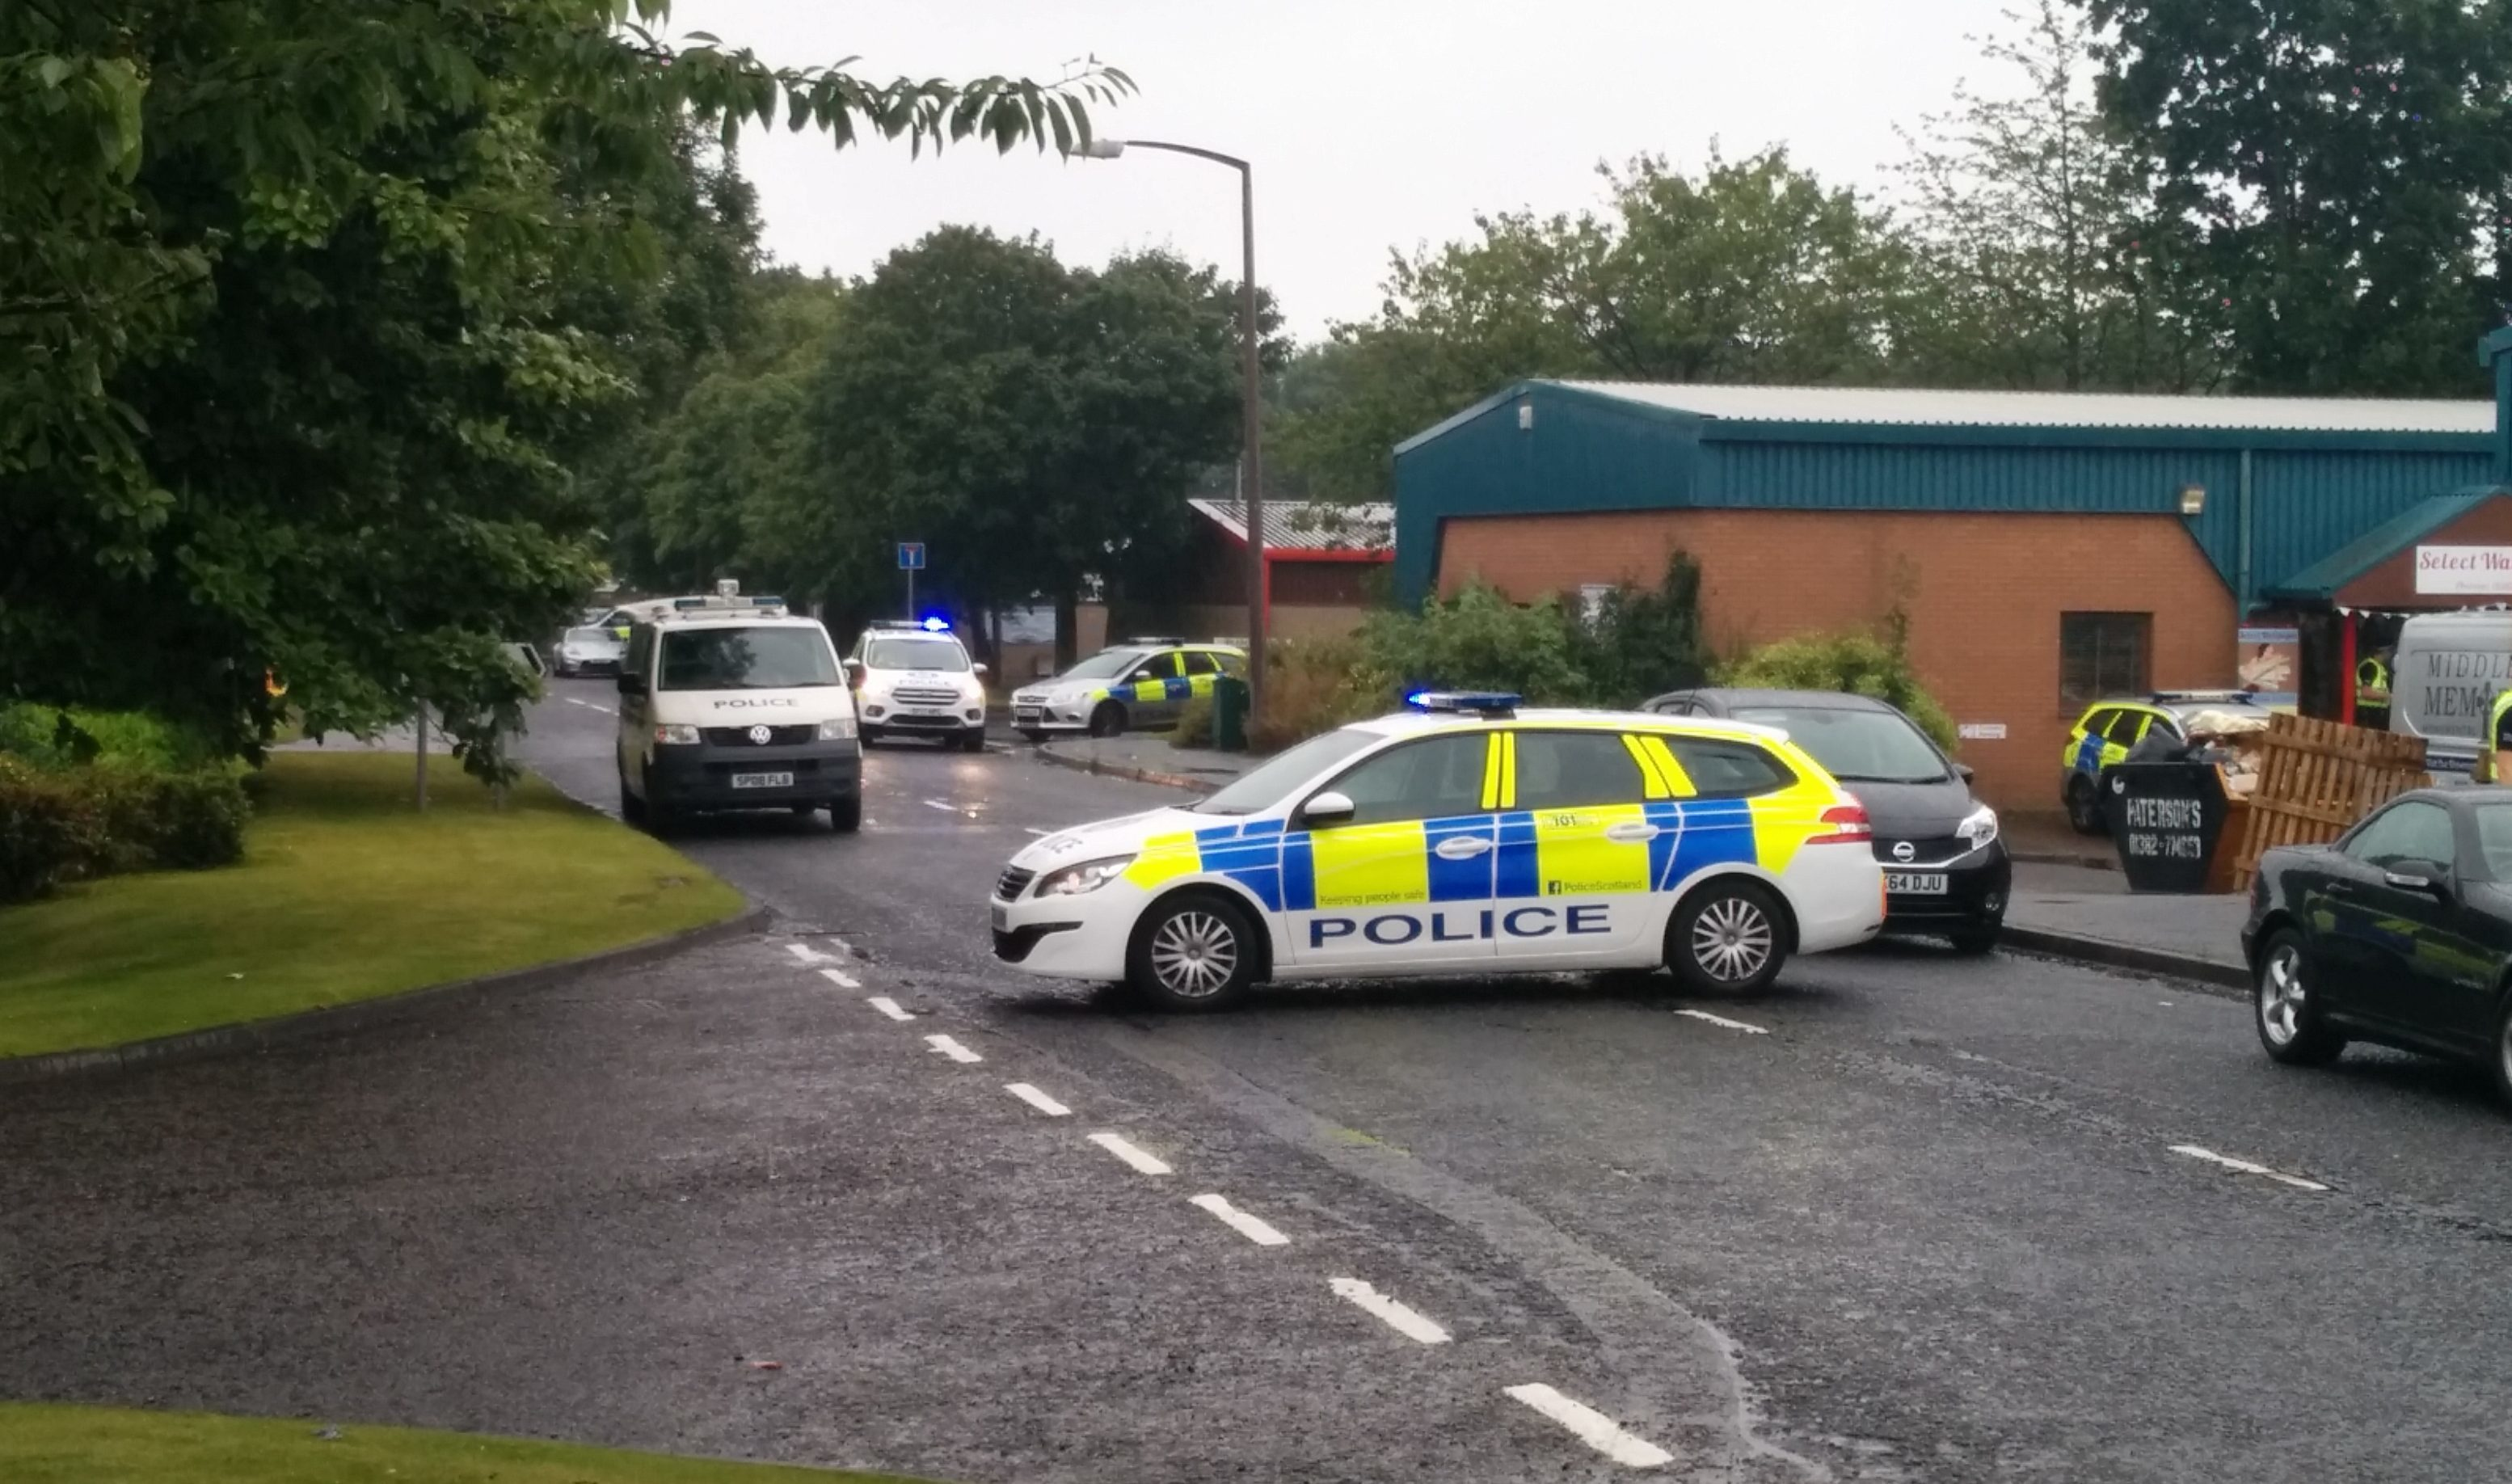 The scene at West Pitkerro Industrial Estate on Wednesday evening.